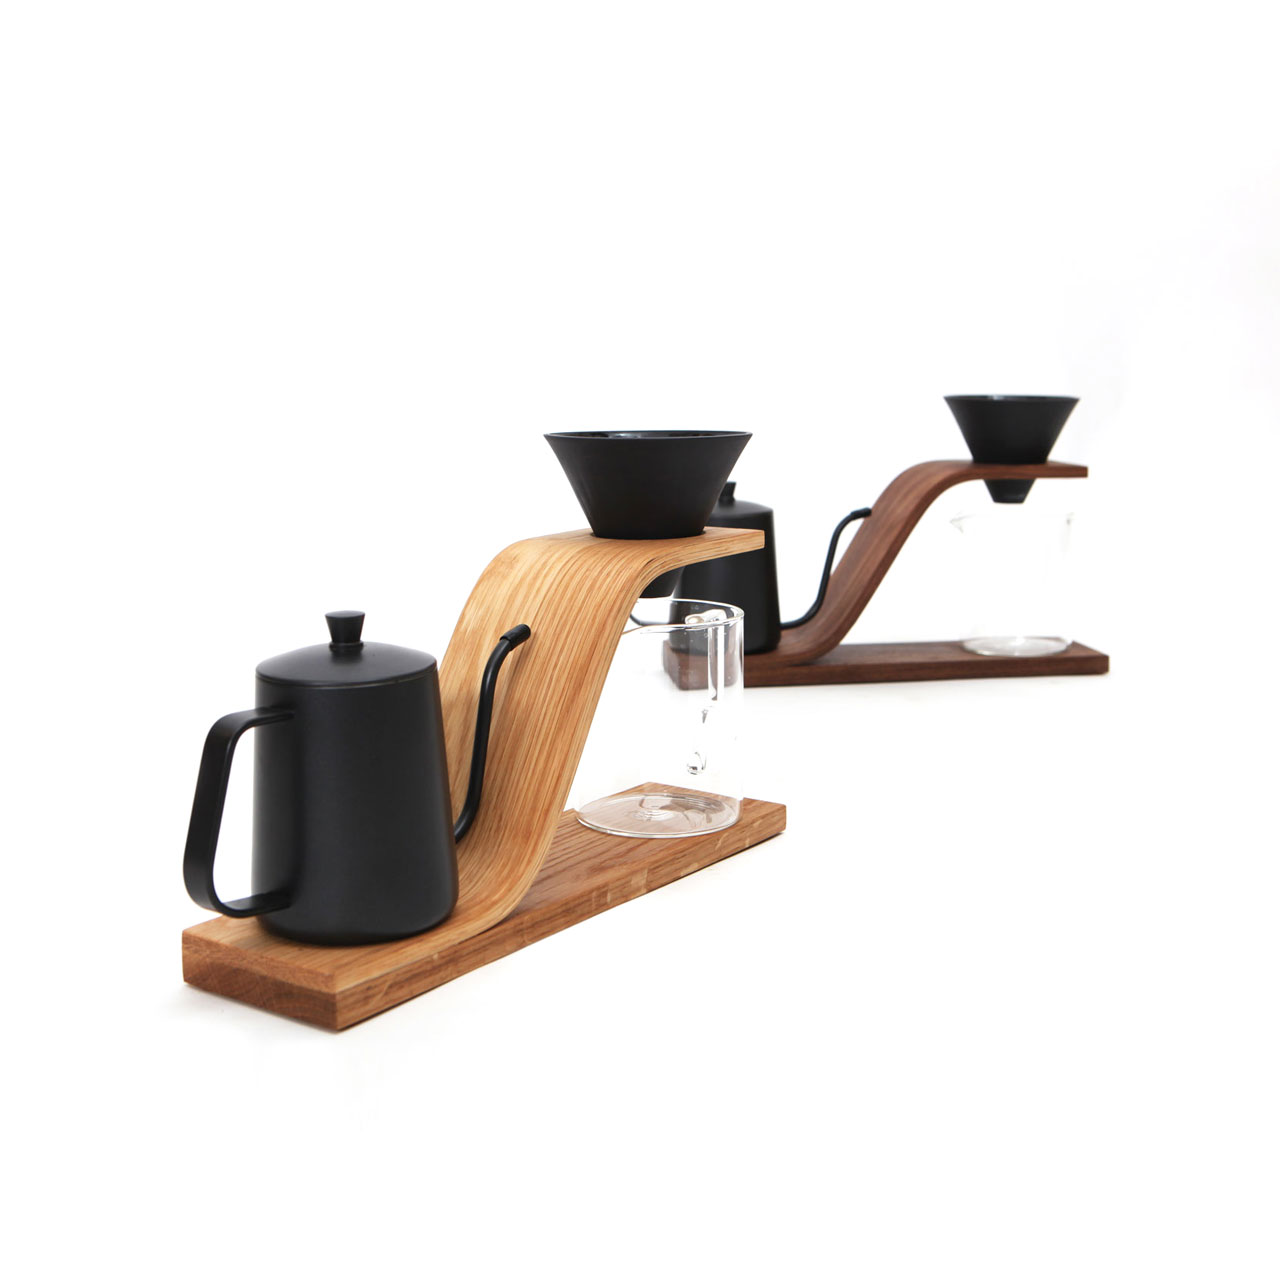 Object/Coffee driper